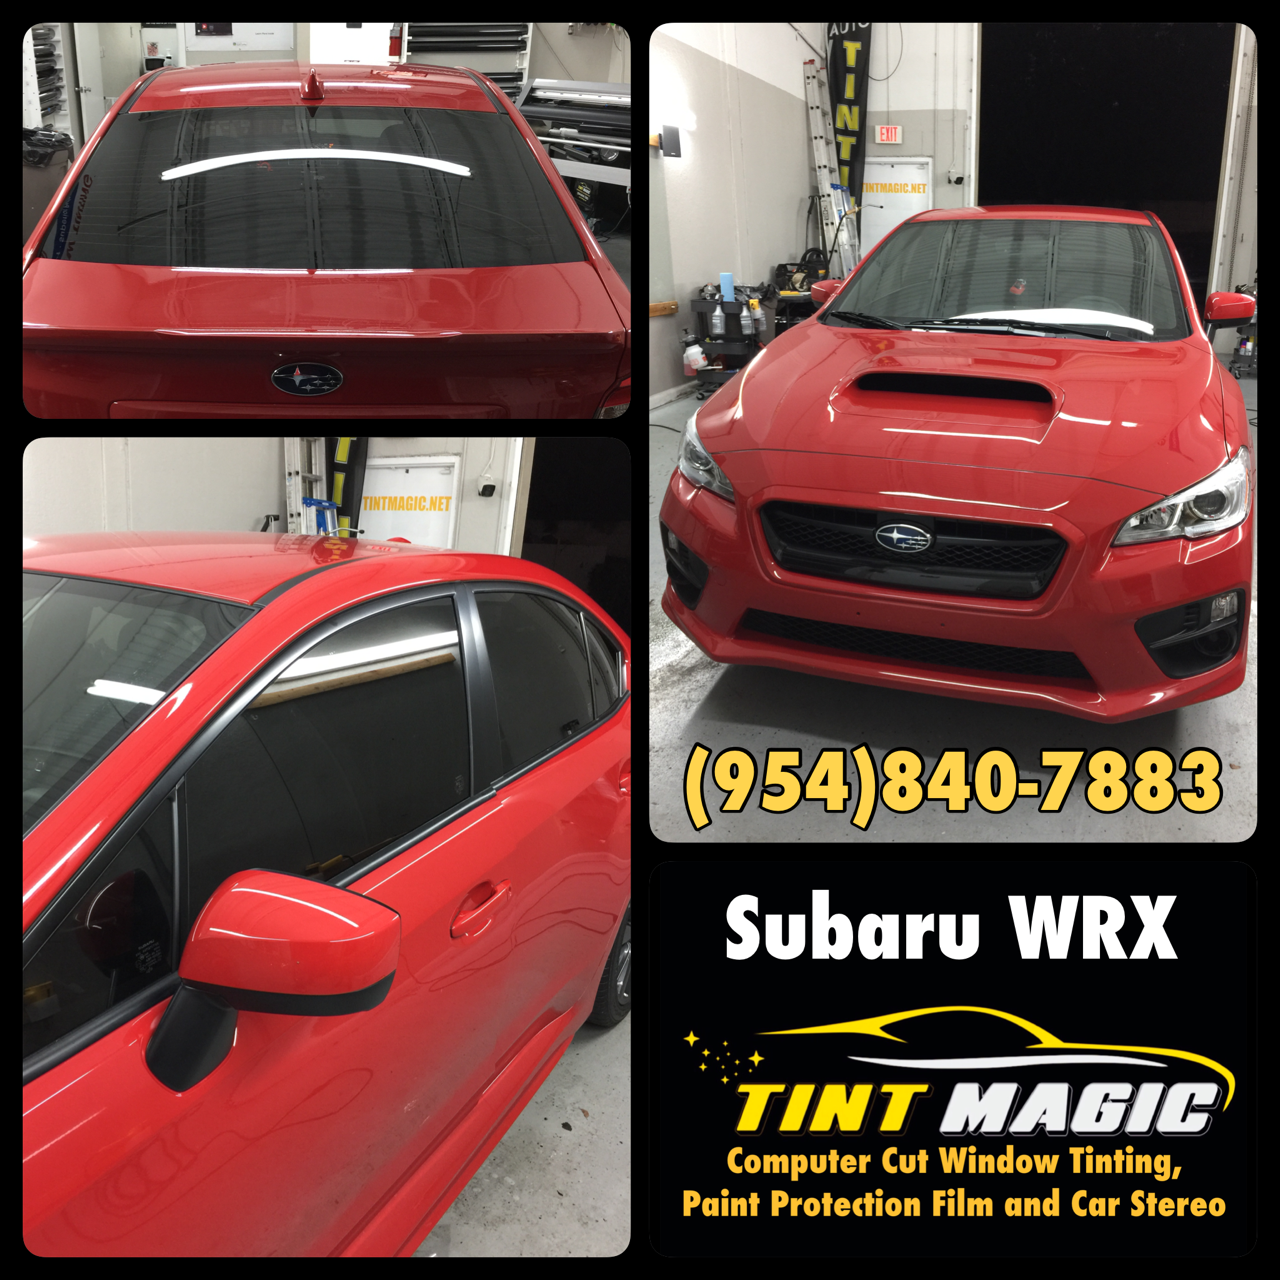 Subaru WRX at Tint Magic Window Tinting Coral Springs